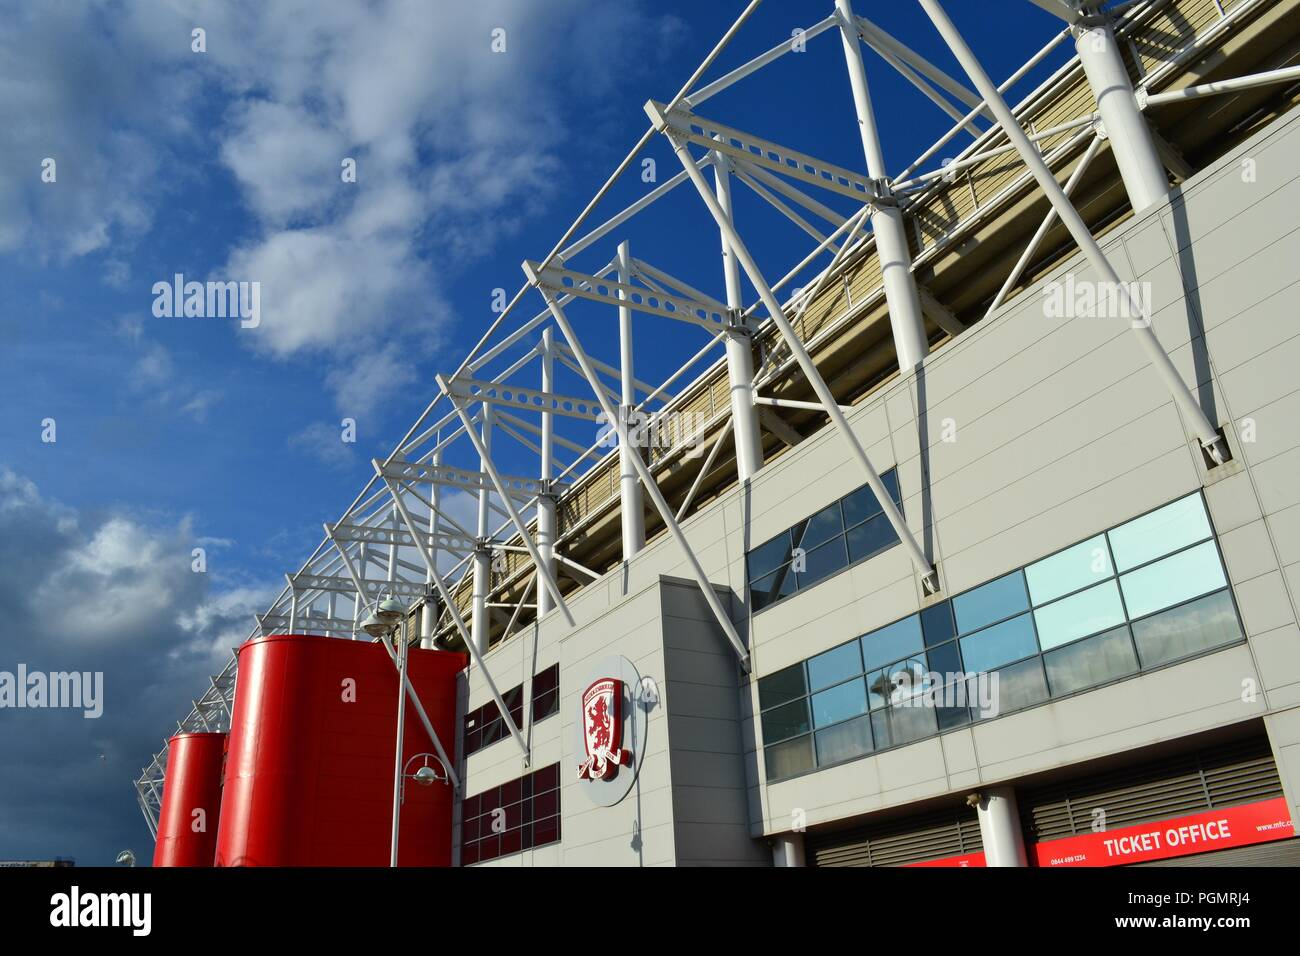 Stunning, naturally lit image of the Riverside Stadium, home of Middlesbrough Football Club. - Stock Image